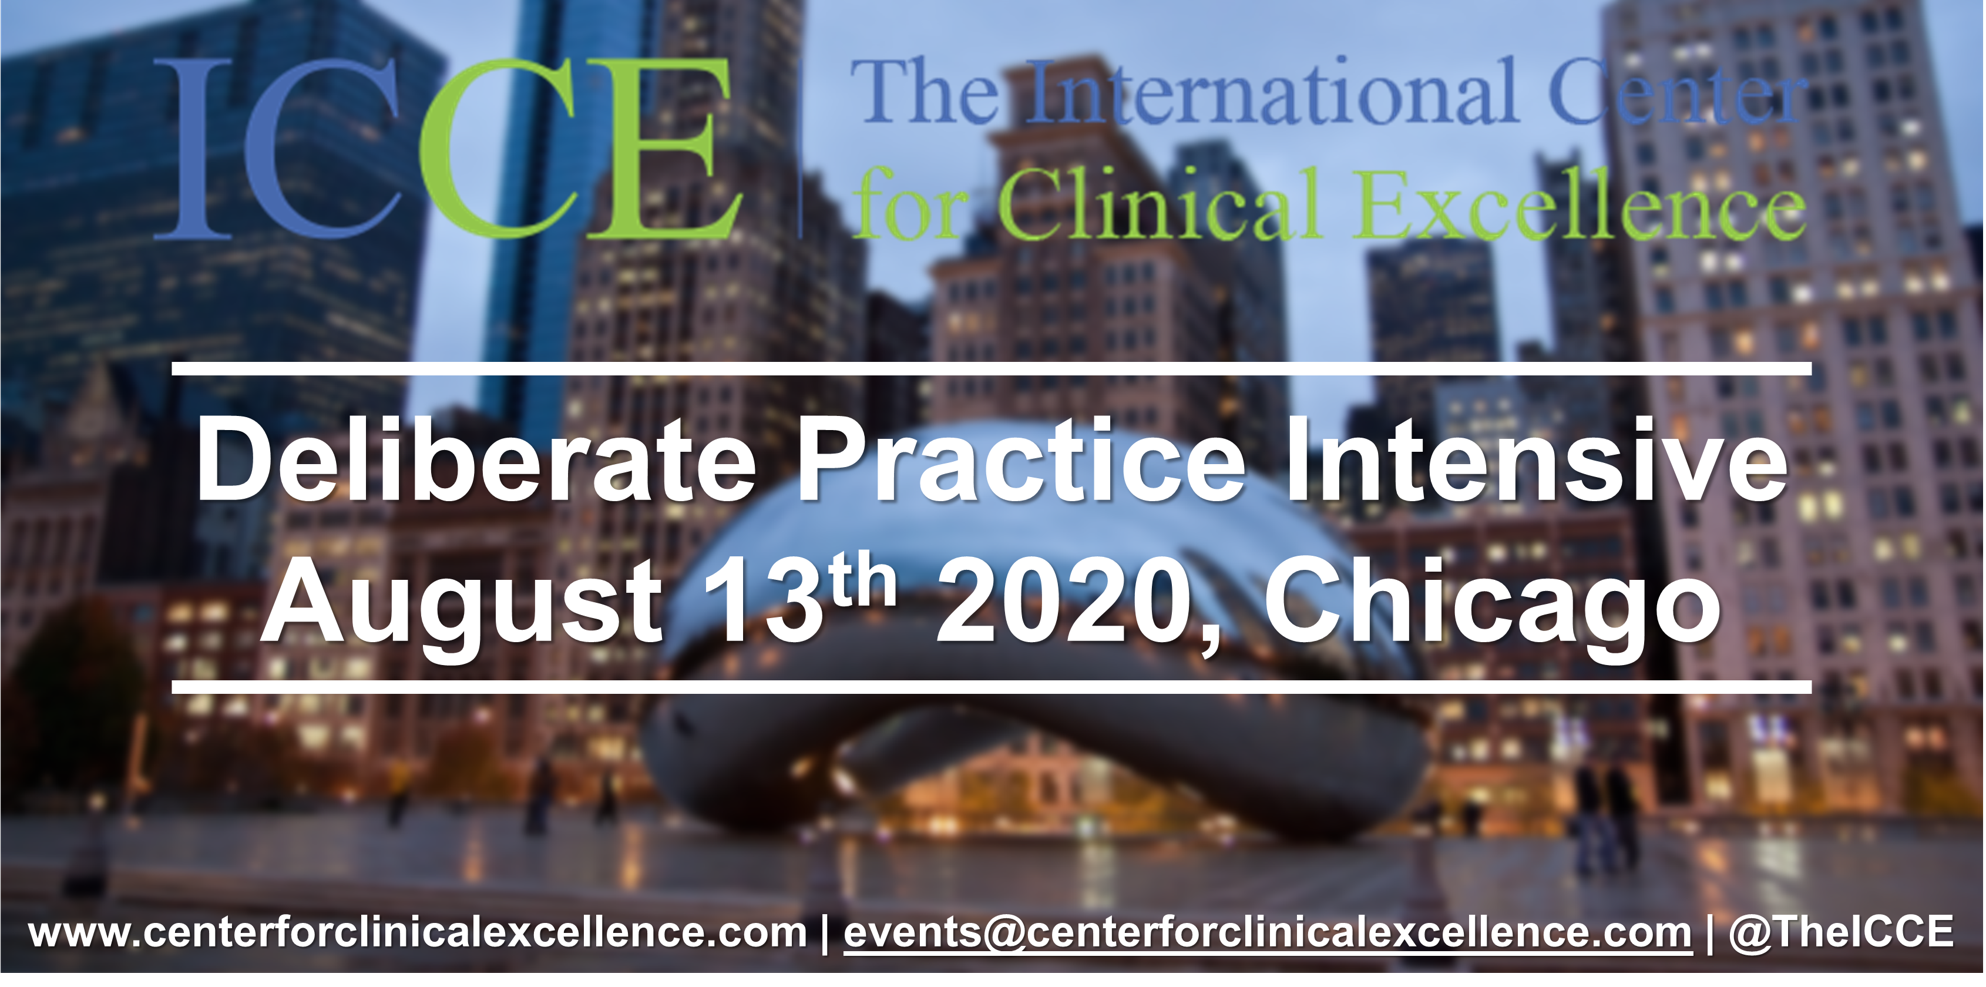 ICCE FIT Deliberate Practice Intensive 2020